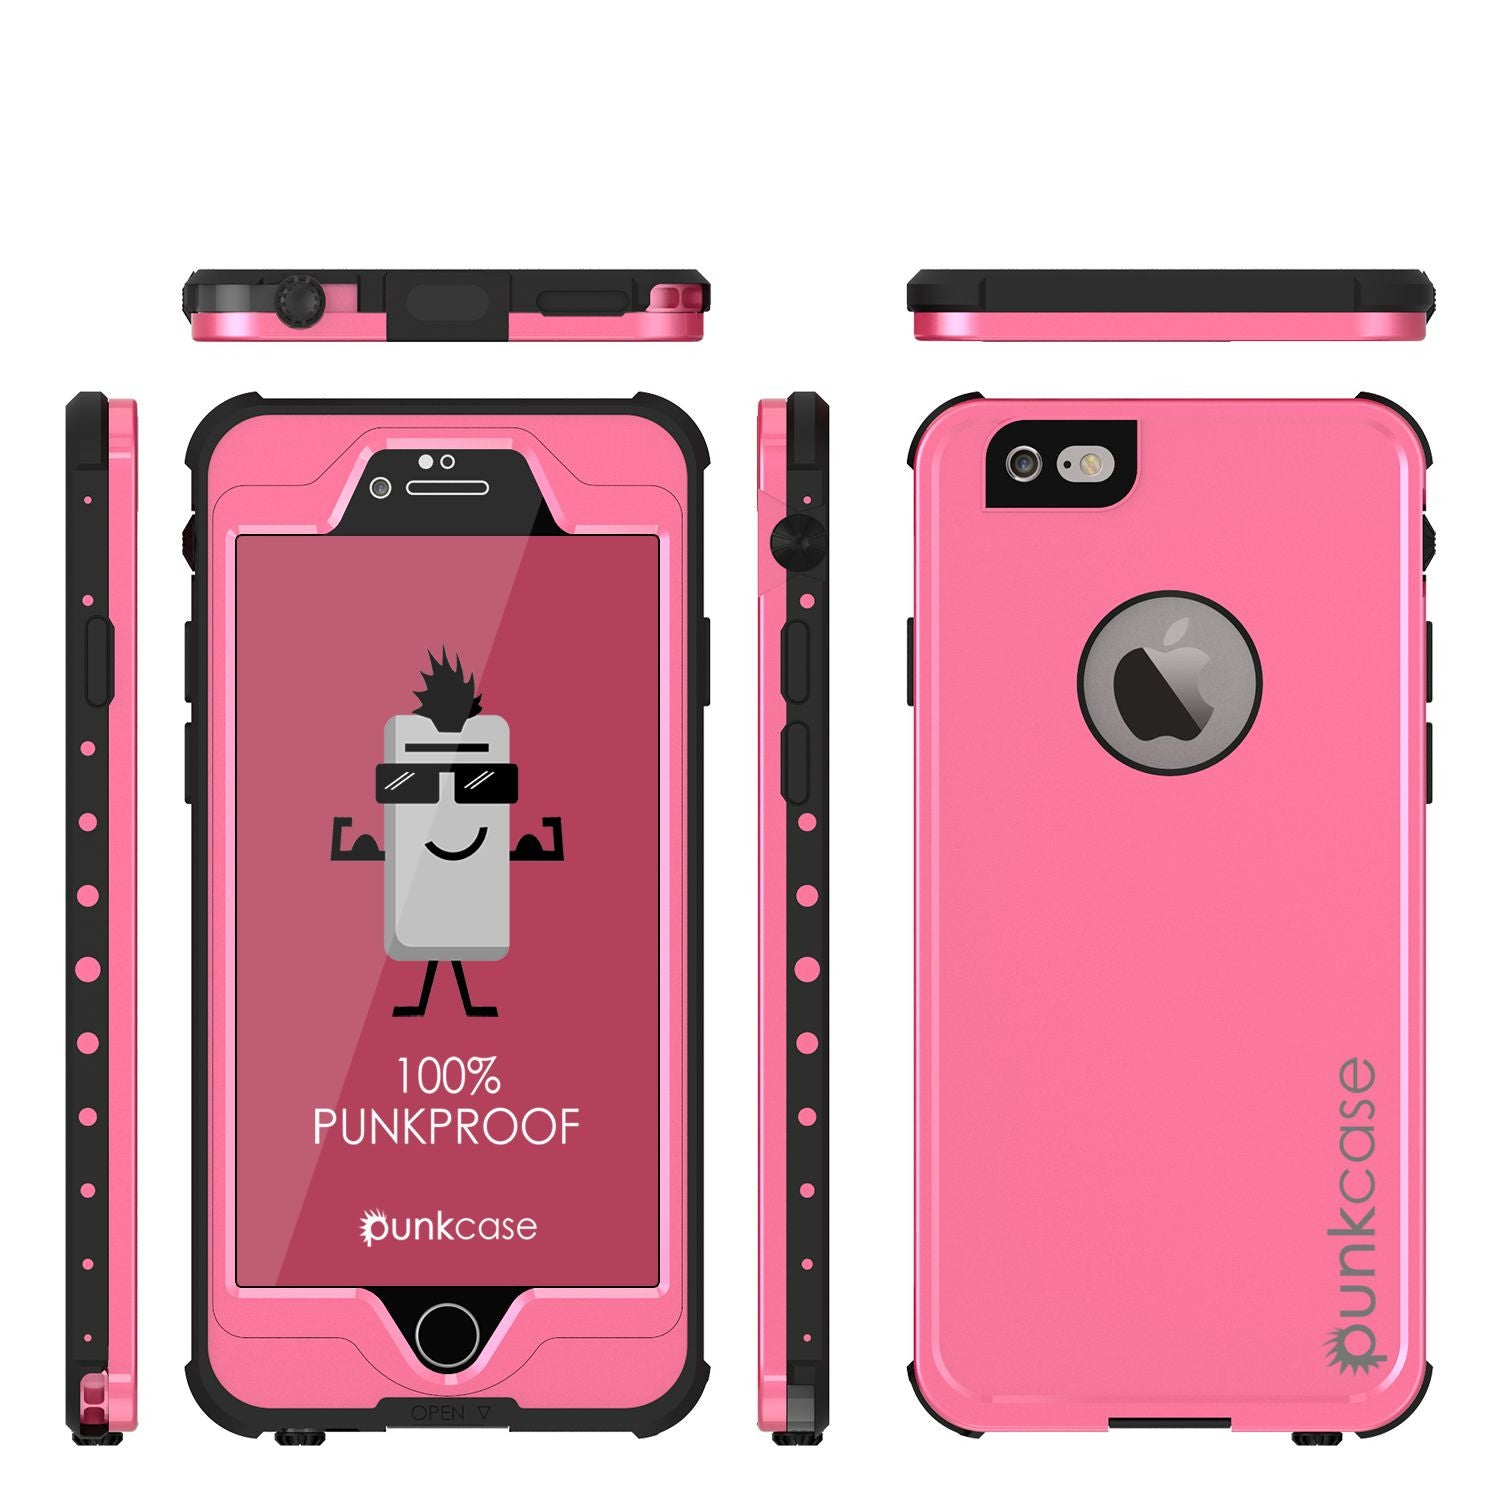 iPhone 6S+/6+ Plus Waterproof Case, PUNKcase StudStar Pink w/ Attached Screen Protector | Warranty